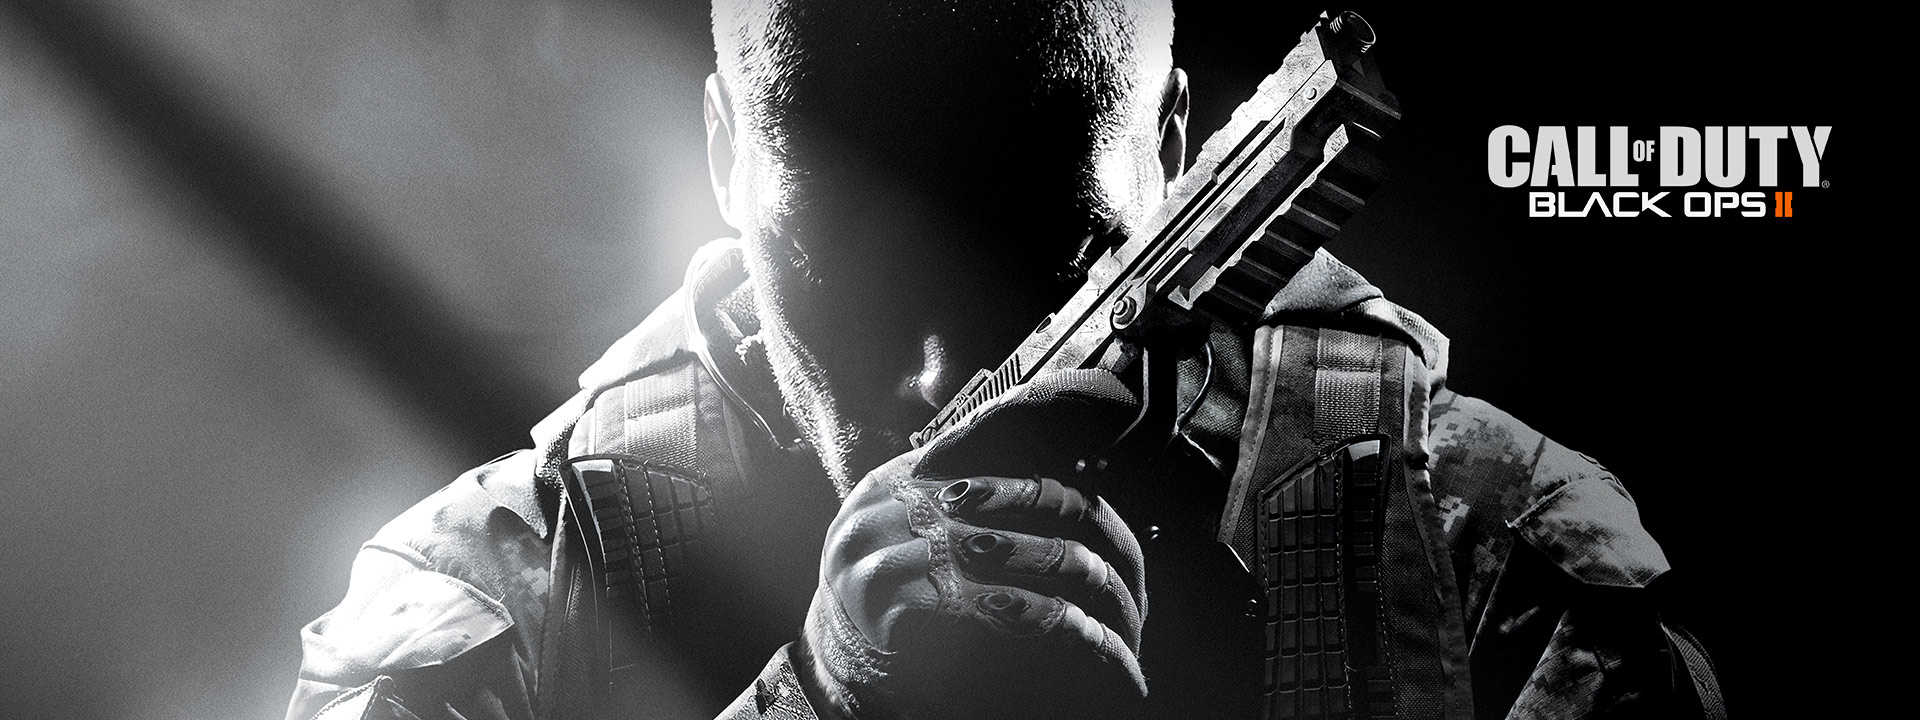 Call of Duty Black Ops 2 playable on Xbox One via back compat